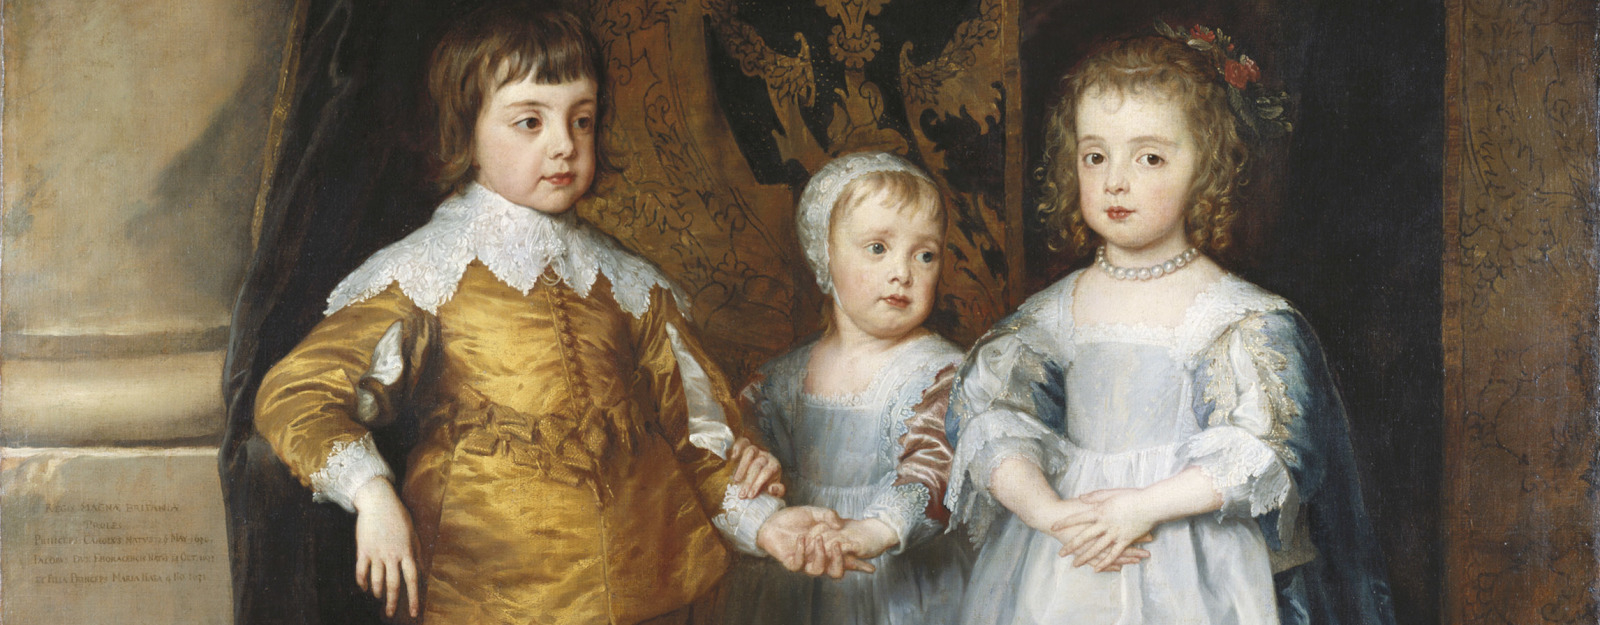 Sir Anthony van Dyck's 'The Three Eldest Children of Charles I'